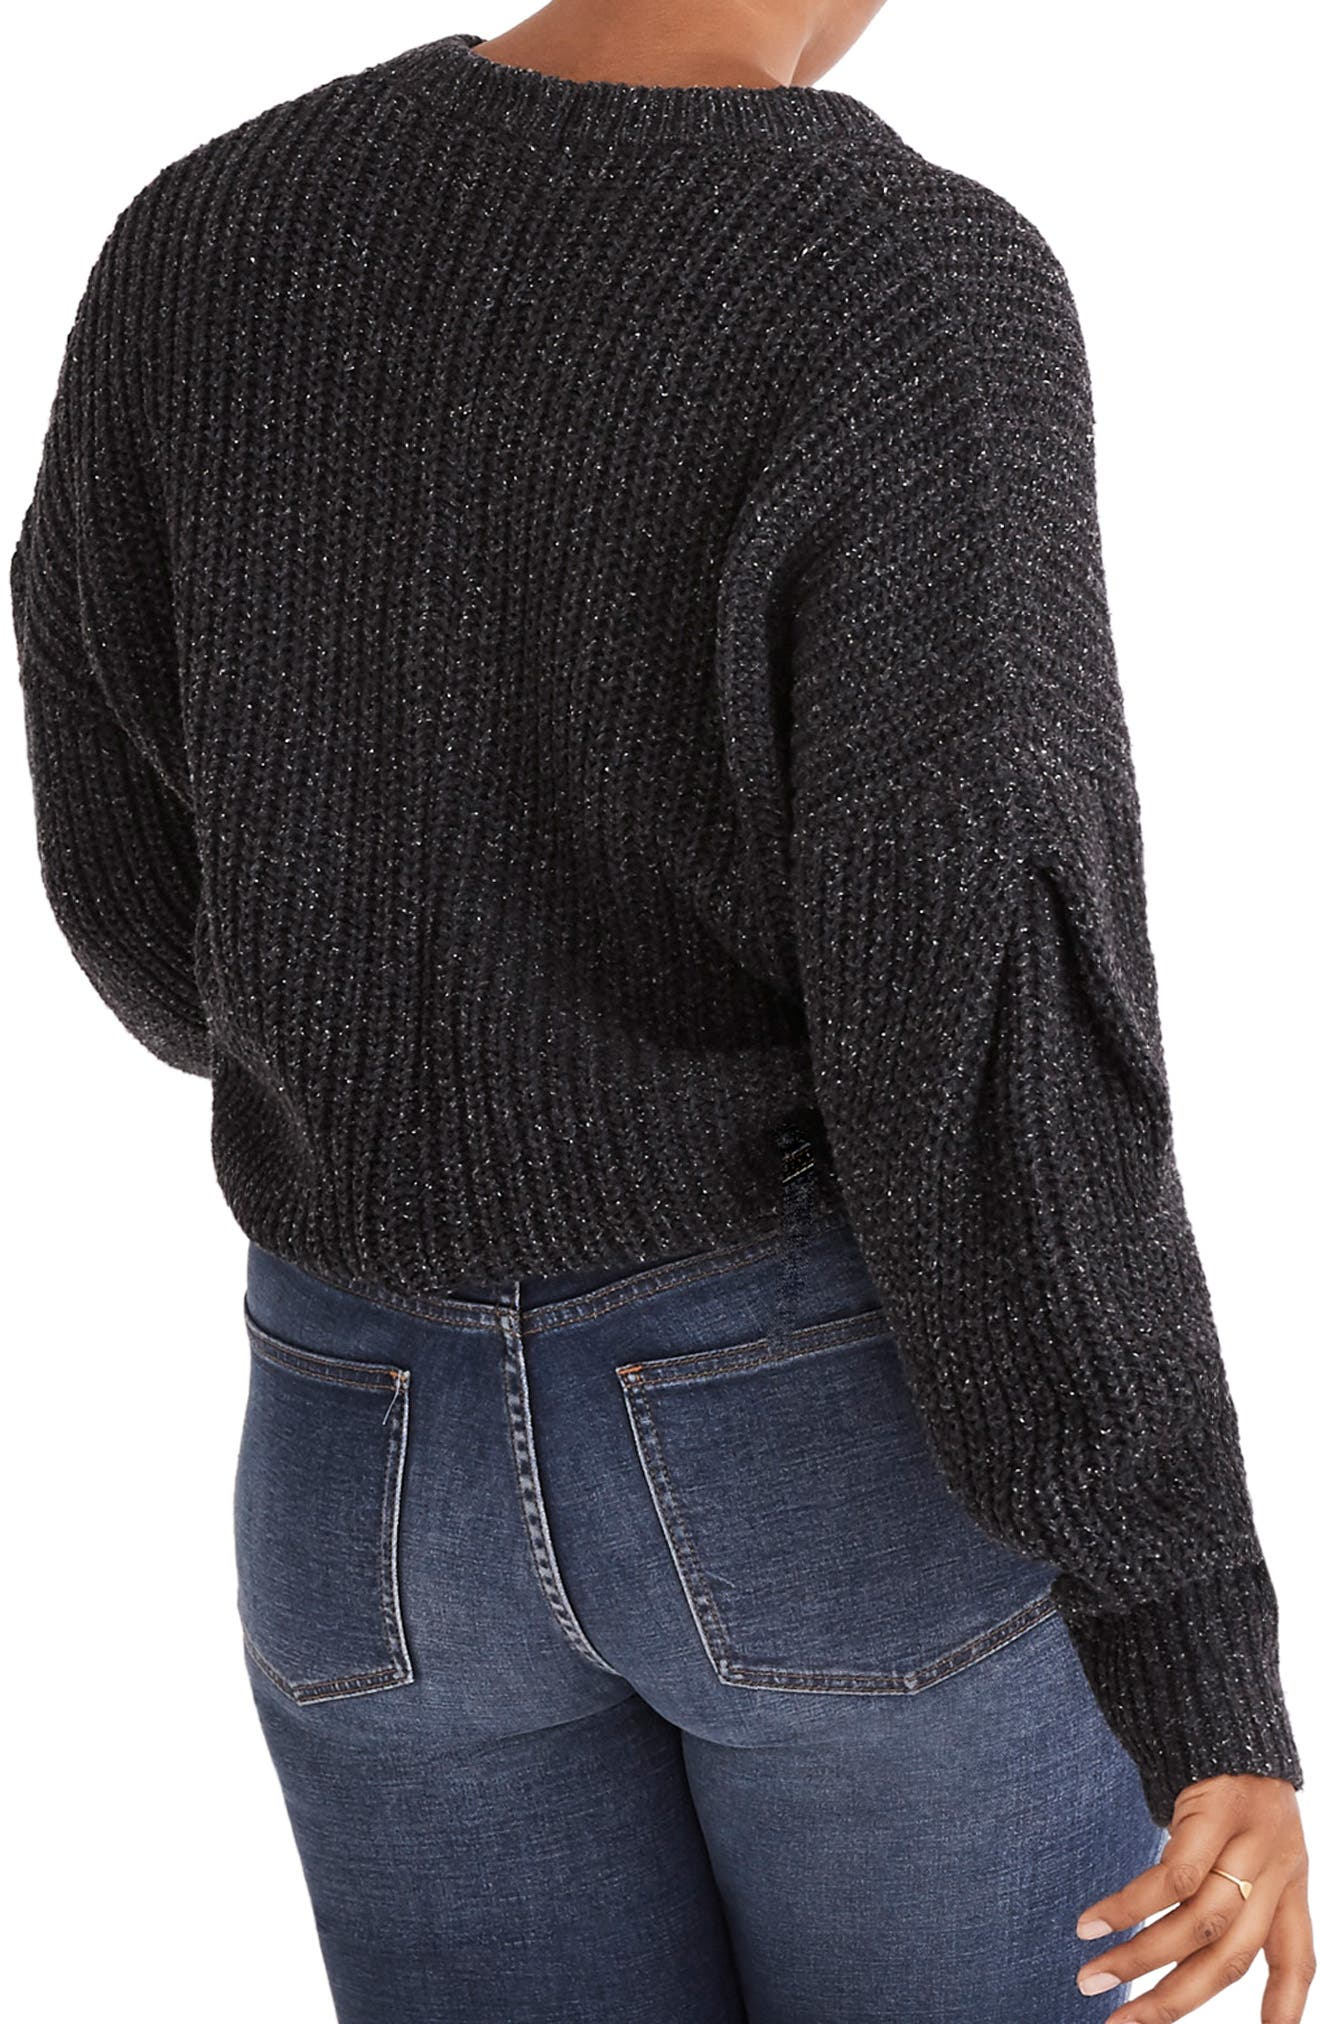 Pleat Sleeve Pullover Sweater,                             Alternate thumbnail 6, color,                             021